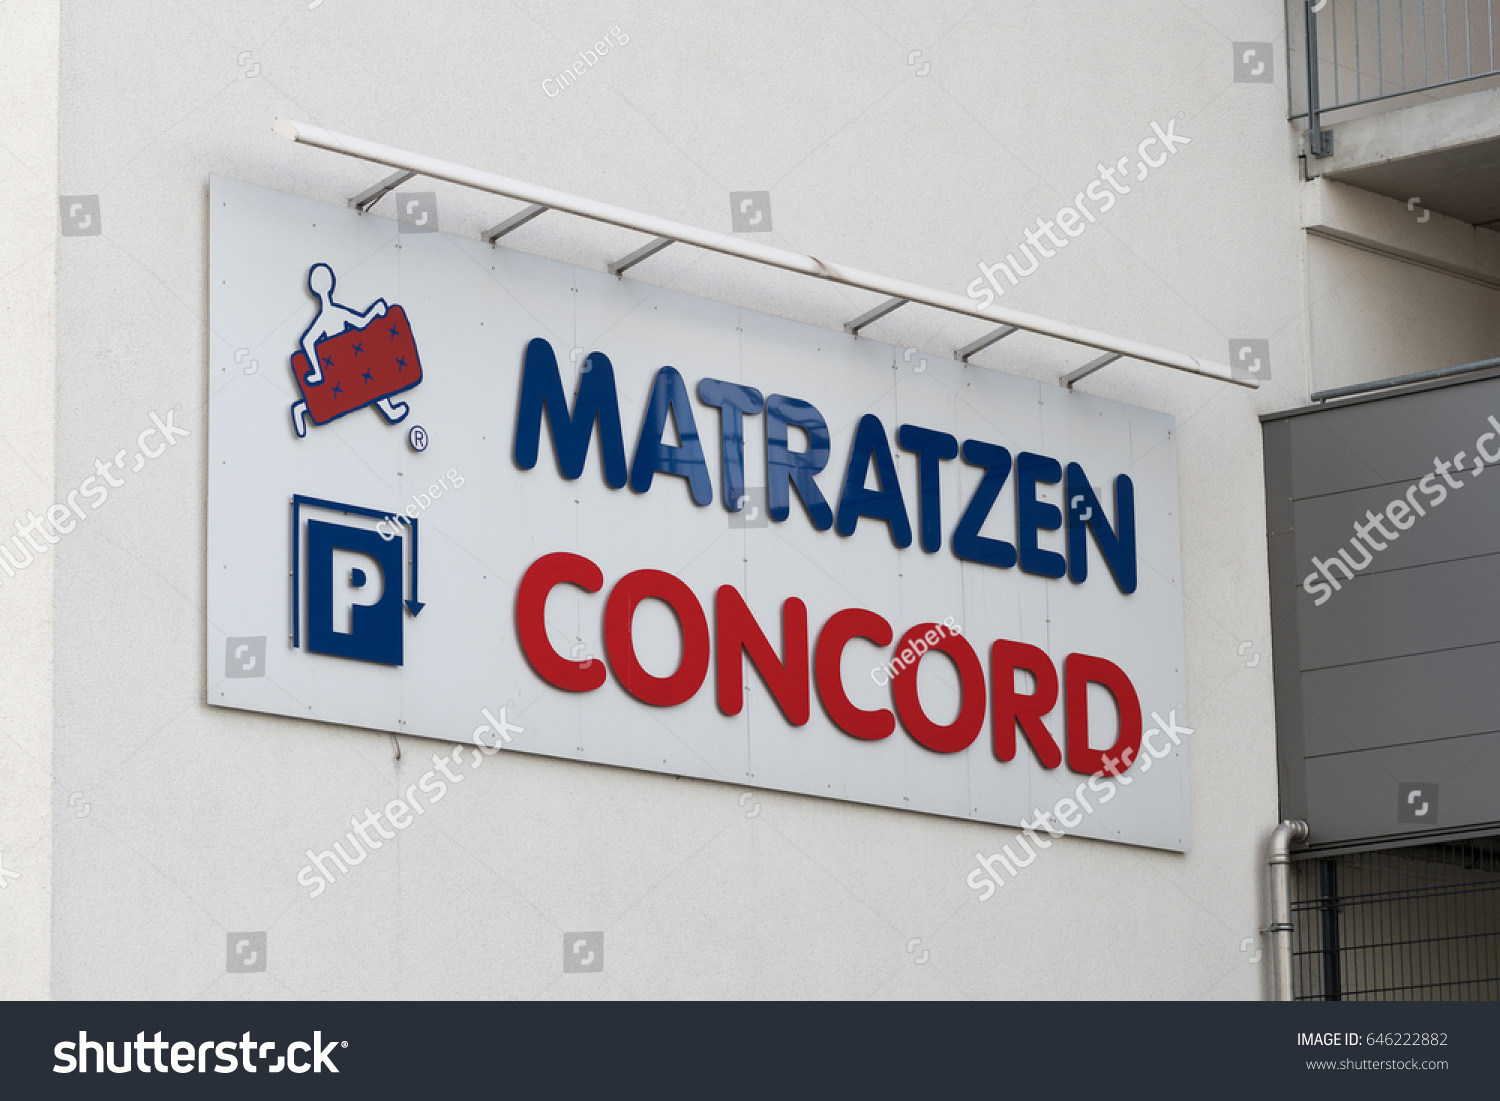 Berlin Matratzen Berlin Germany May 11 2017 Matratzen Stock Photo Edit Now